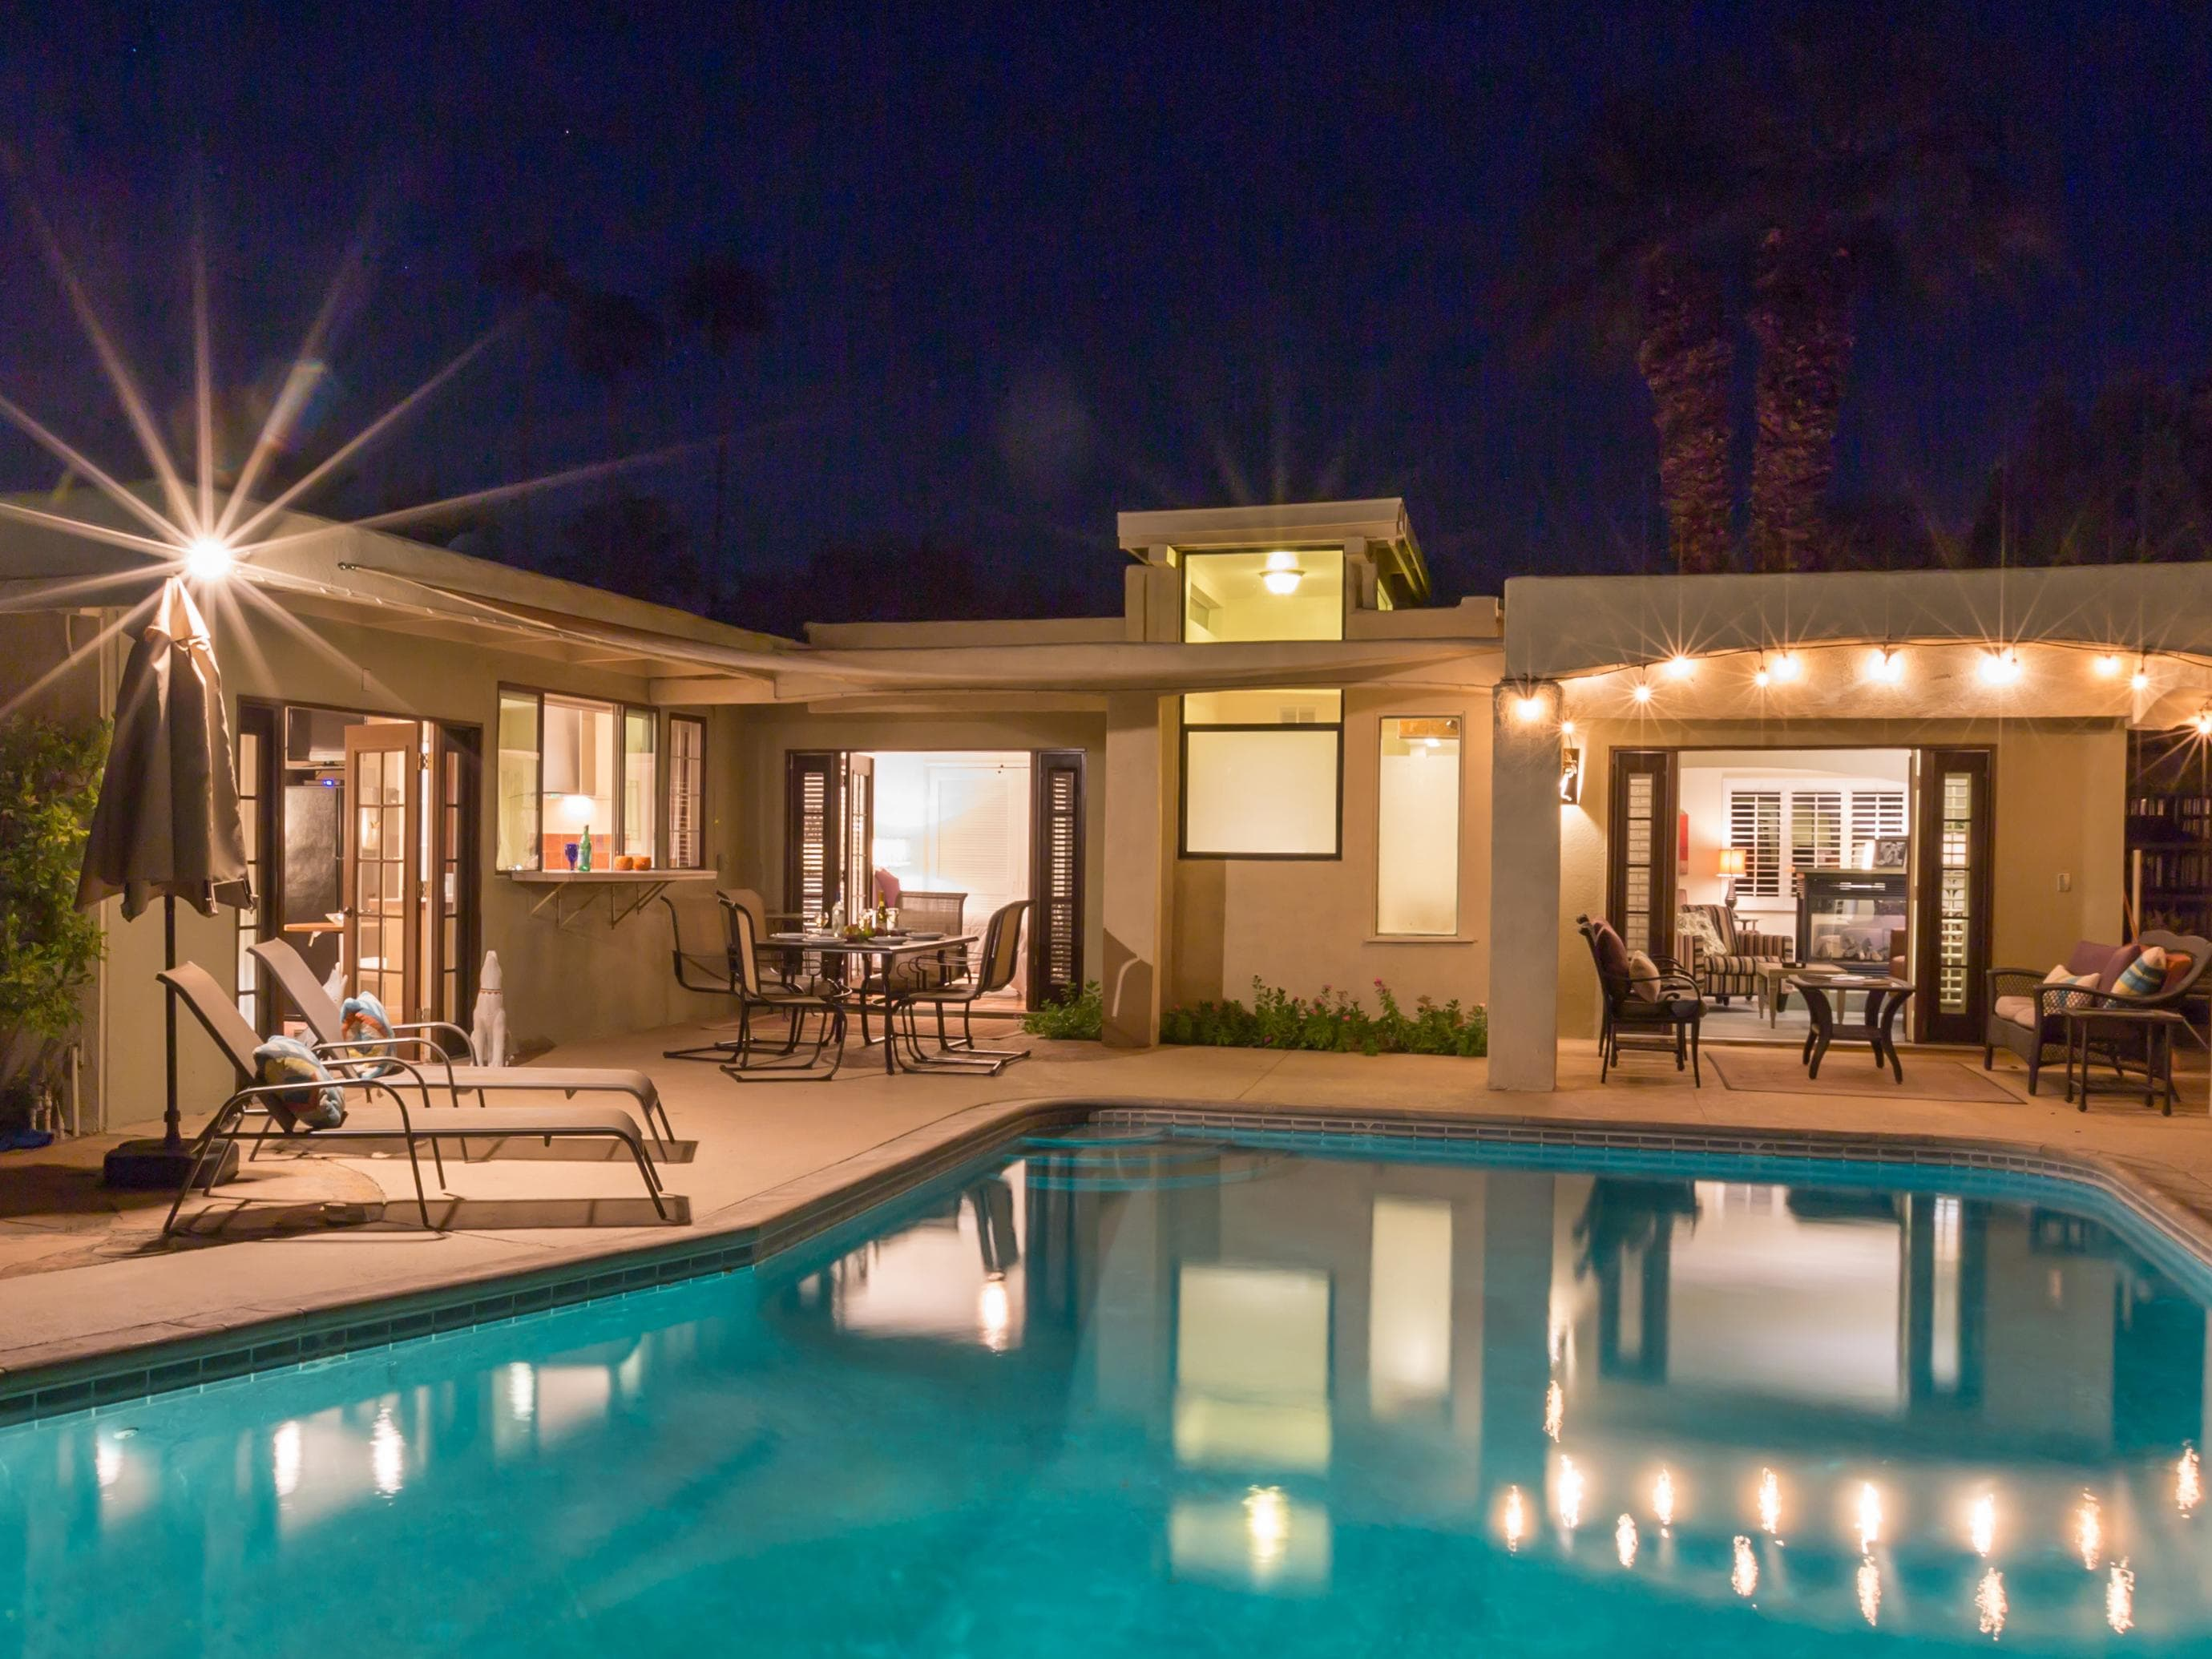 Property Image 1 - Celebrity Pedigree Home in Palm Springs with Pool/Spa